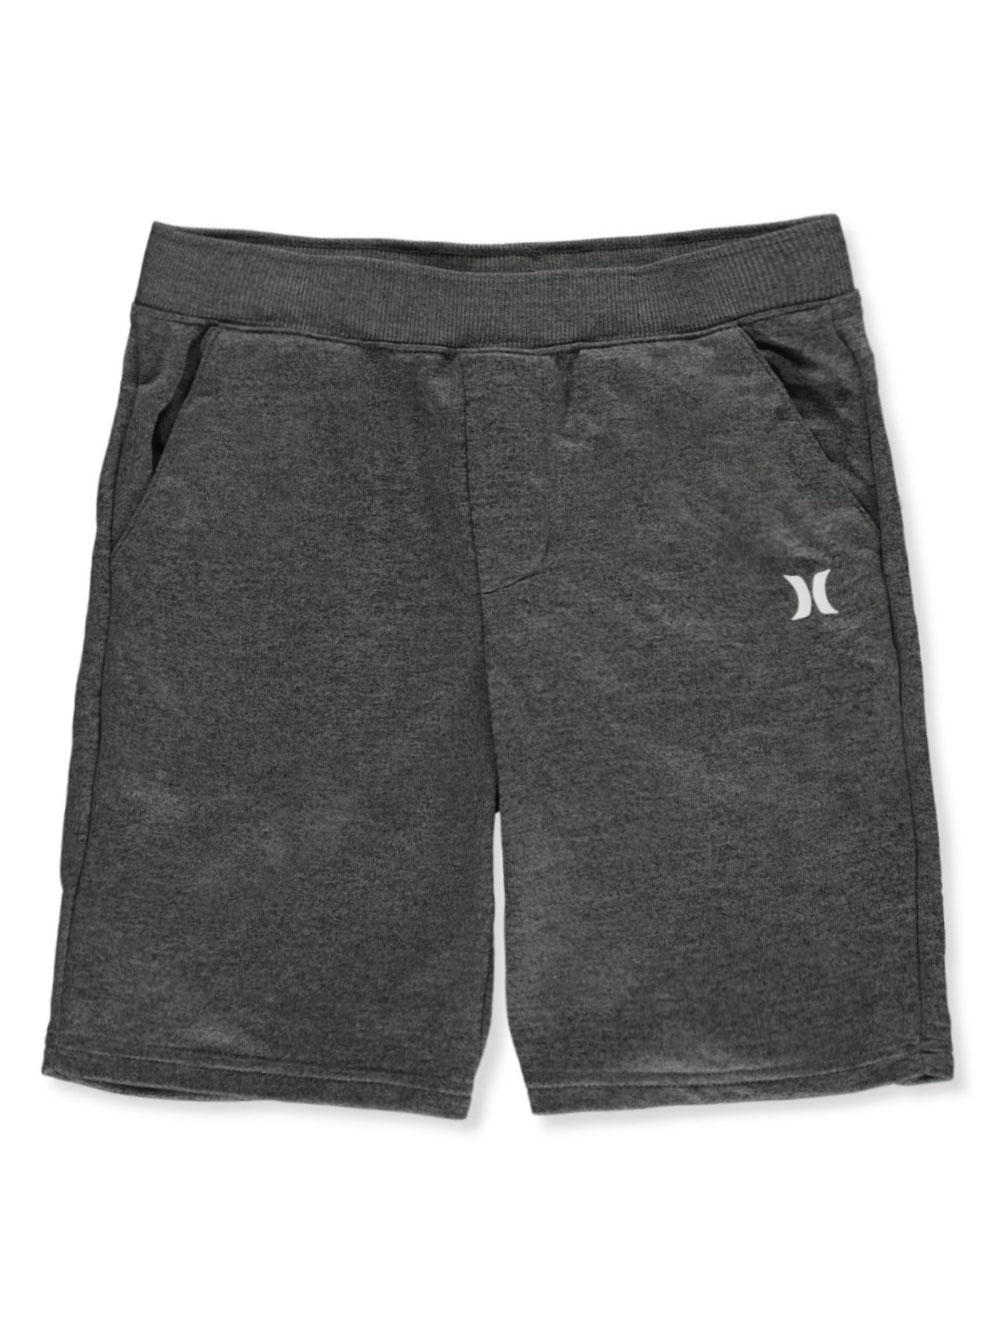 Medium Gray Shorts